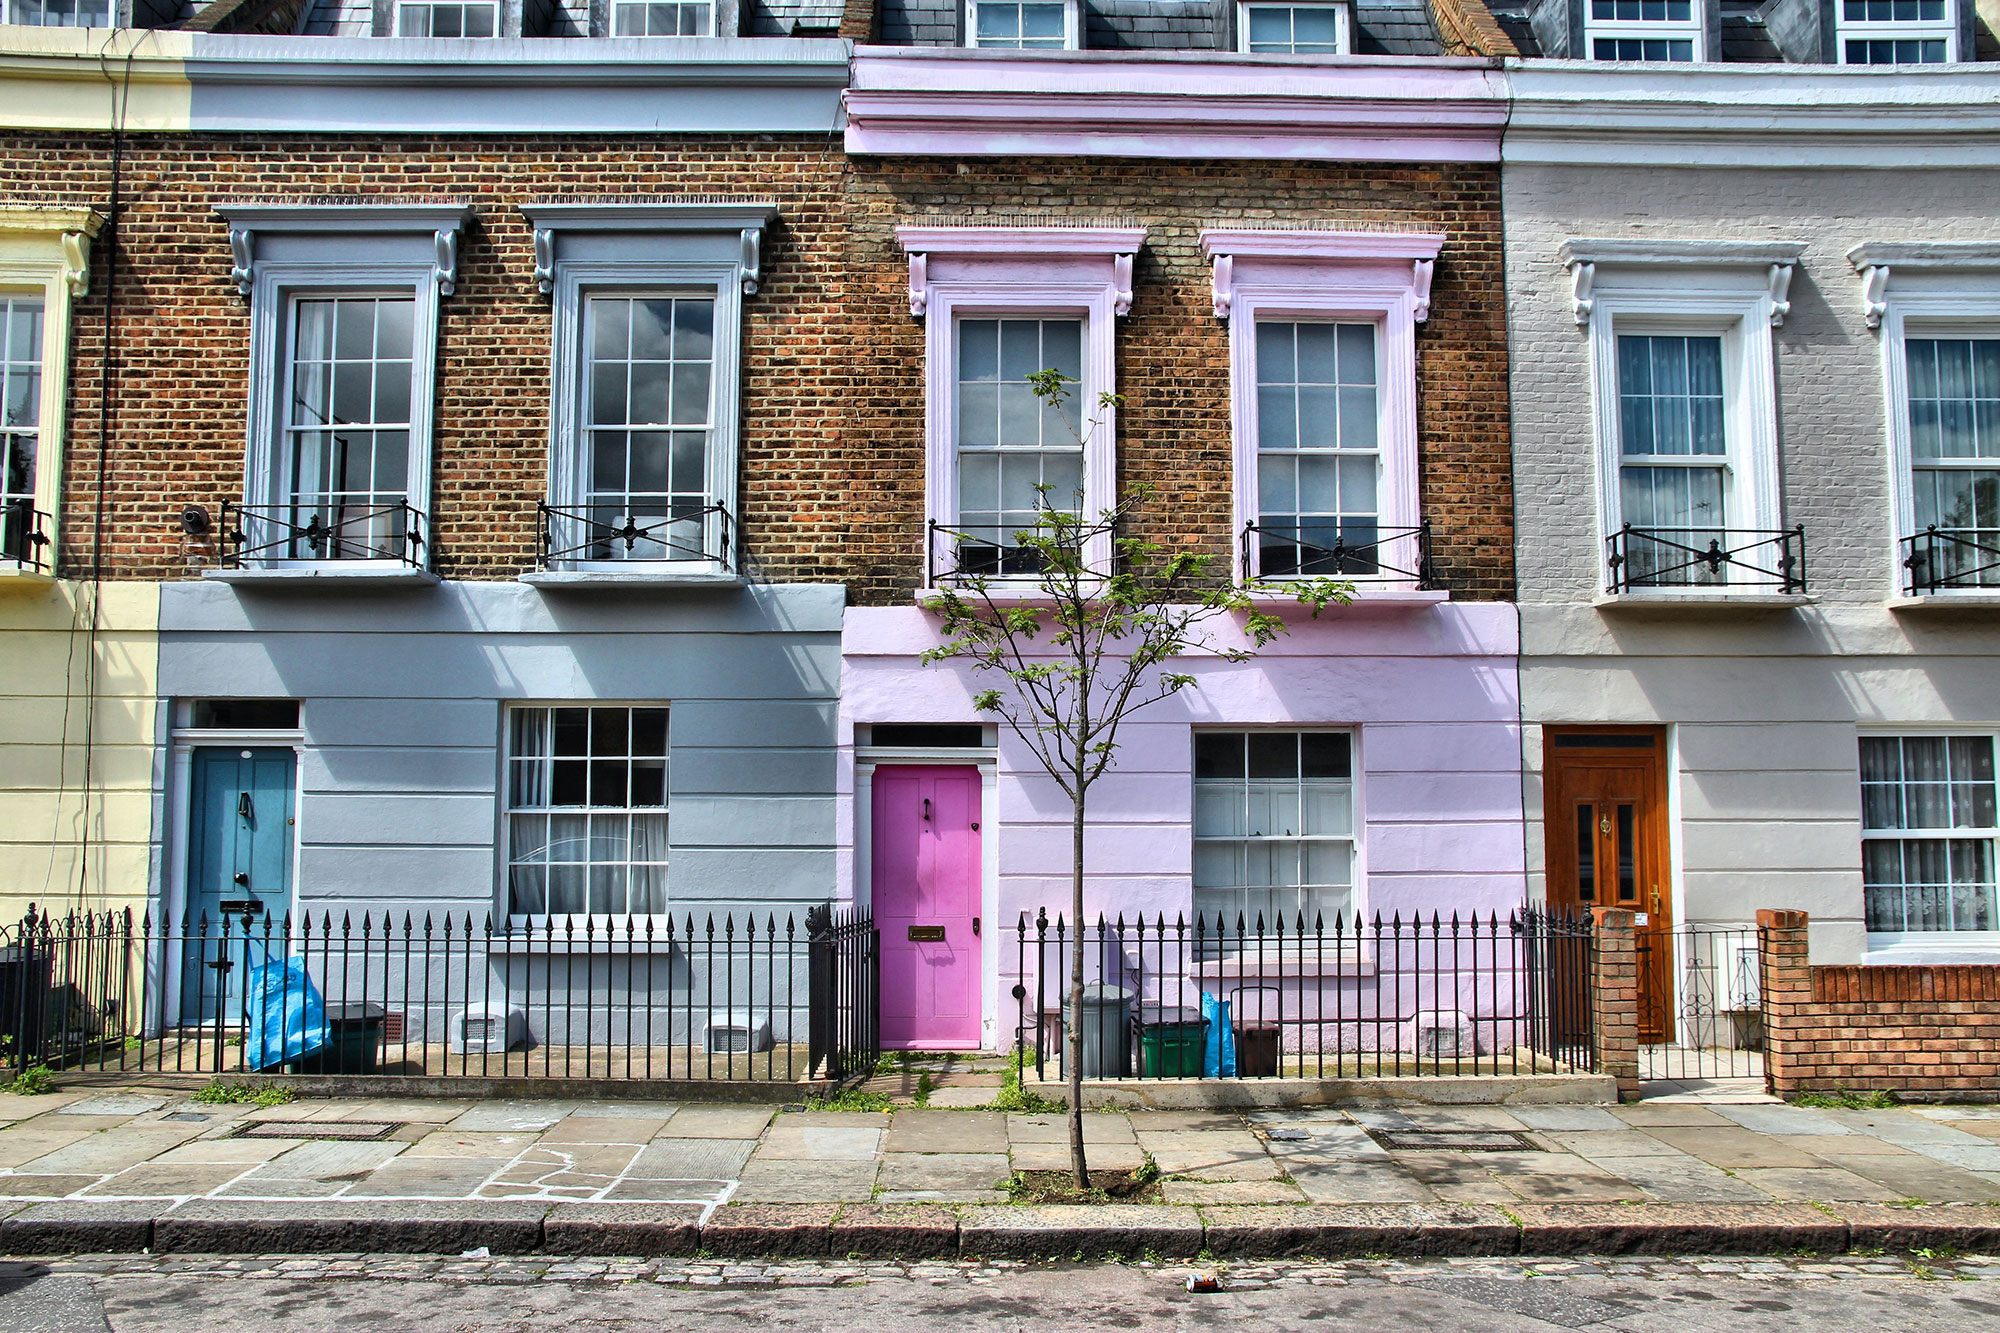 UK housefronts